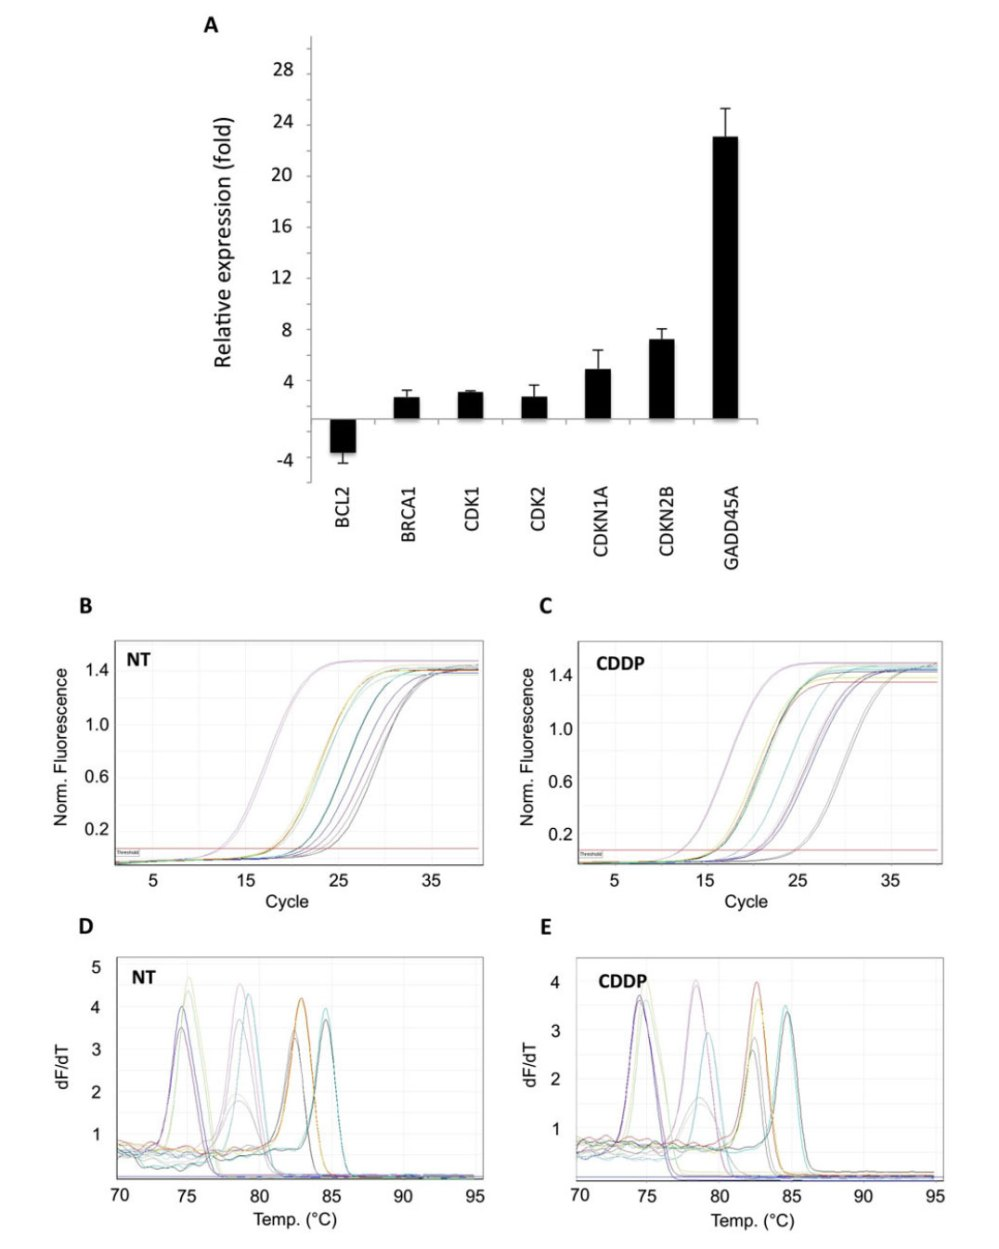 medium resolution of application of pcr array to cisplatin cddp treated hela cells difference in transcriptional activity of cisplatin treated hela cells